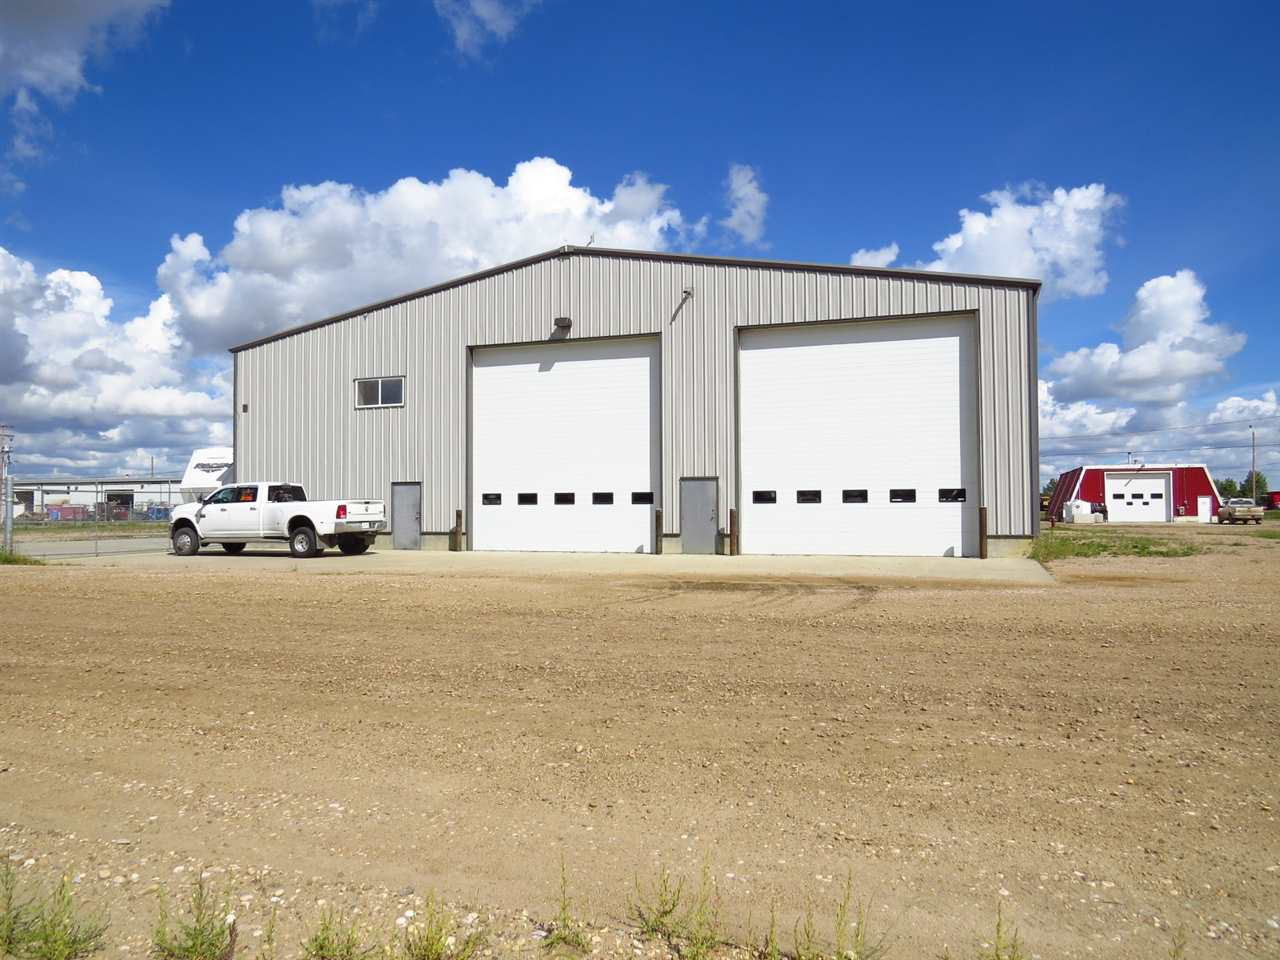 Steel Construction Shop, 8000 sqft Heated, 20ft doors! 8000 sqft Steel Heated Shop, 1600 sqft enclosed Mezzanine, Offices, Washroom, Parts Room, Work Benches and wash bay all on hi-strength reinforced concrete. 3 large doors/back and front driveway for access in and out of the shop for the equipment and all this sitting on 3 Large lots, steel security fenced and storage shed. Ideal for Heavy Equipment Company, Heavy Trucks or large Farming operation.